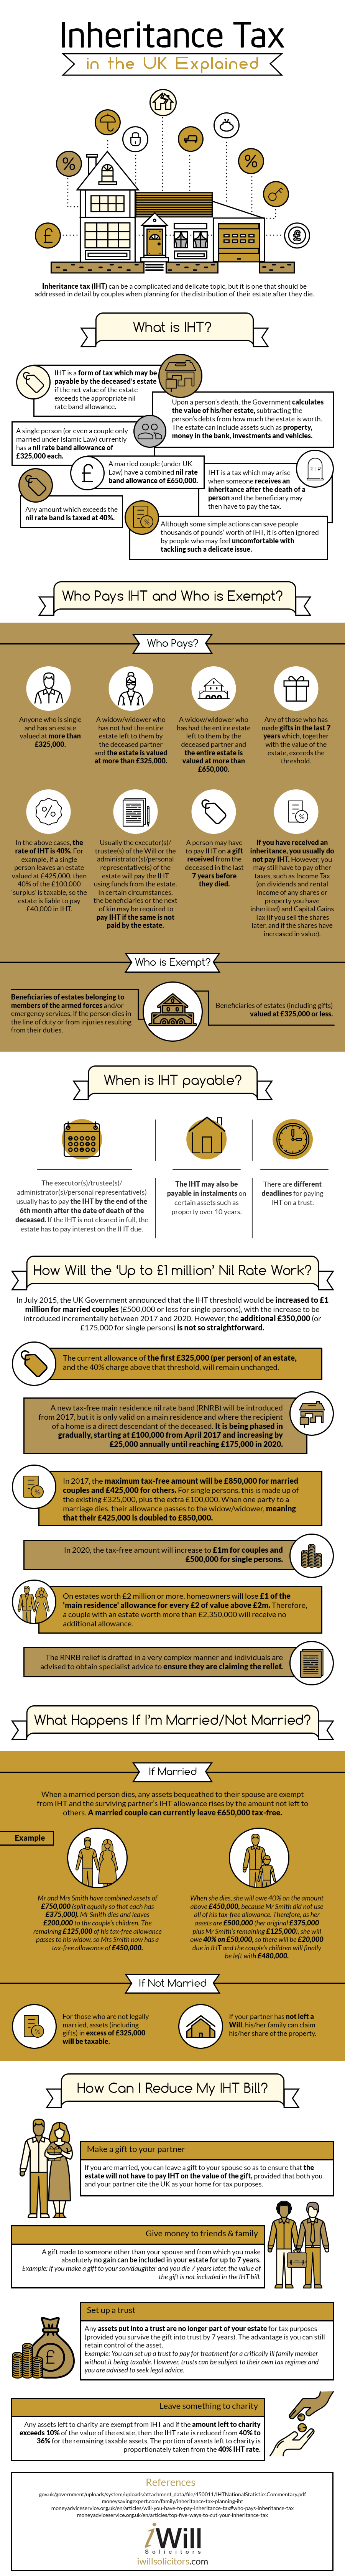 Inheritance Tax in the UK Explained